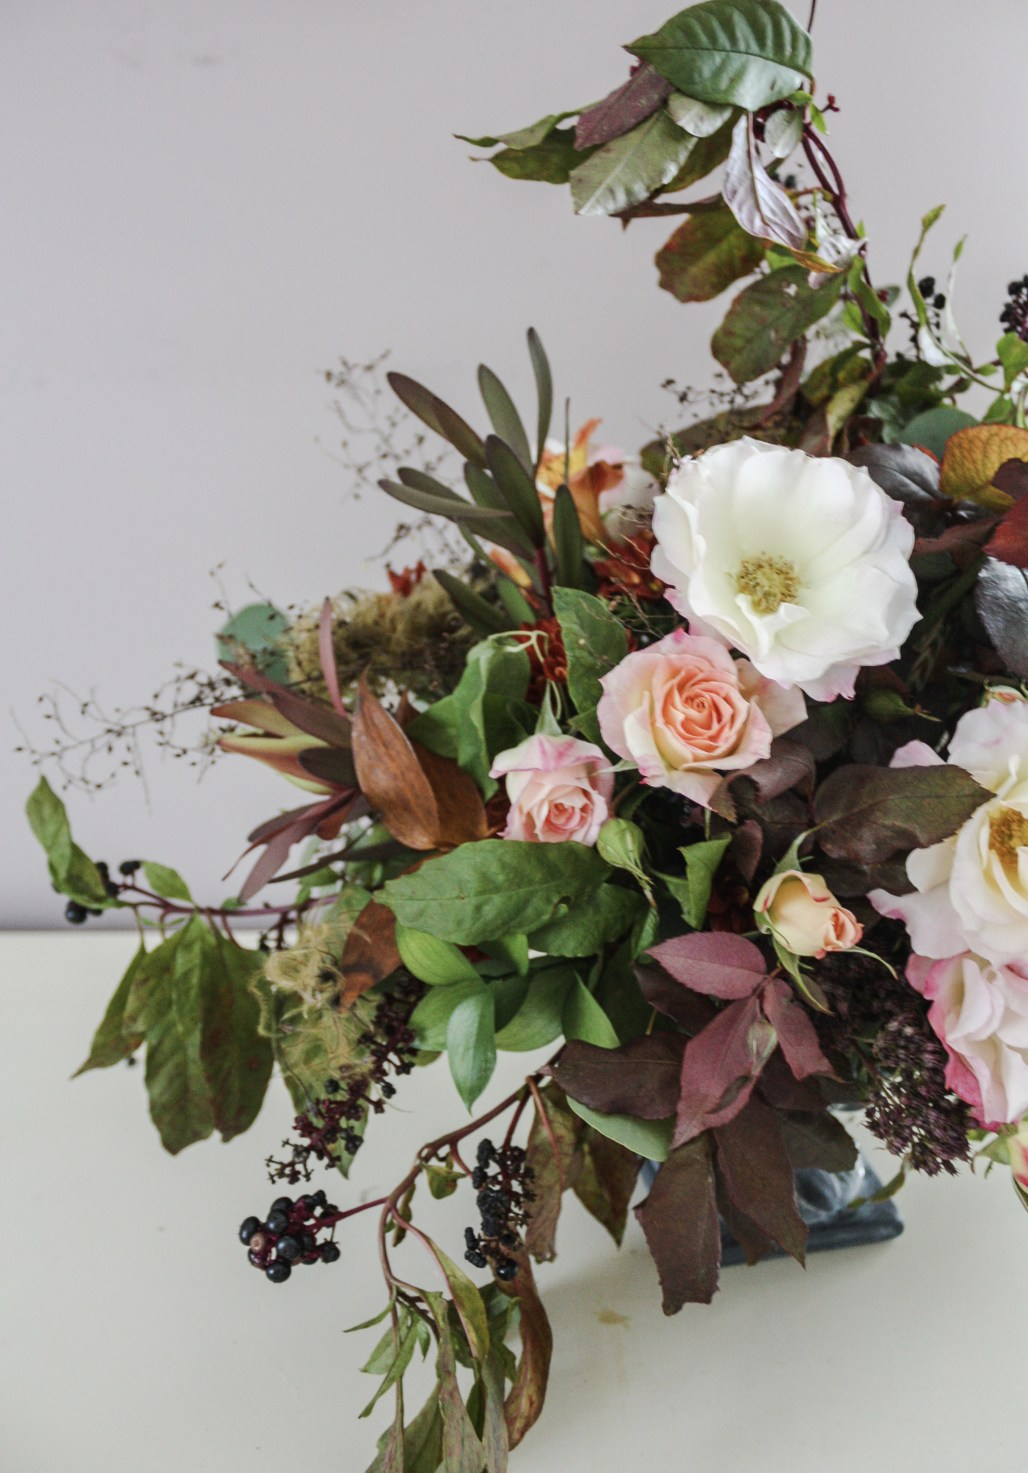 Foraged Blooms    Where Old World Meets Wild Bohemian Autumn    Dreamery Events